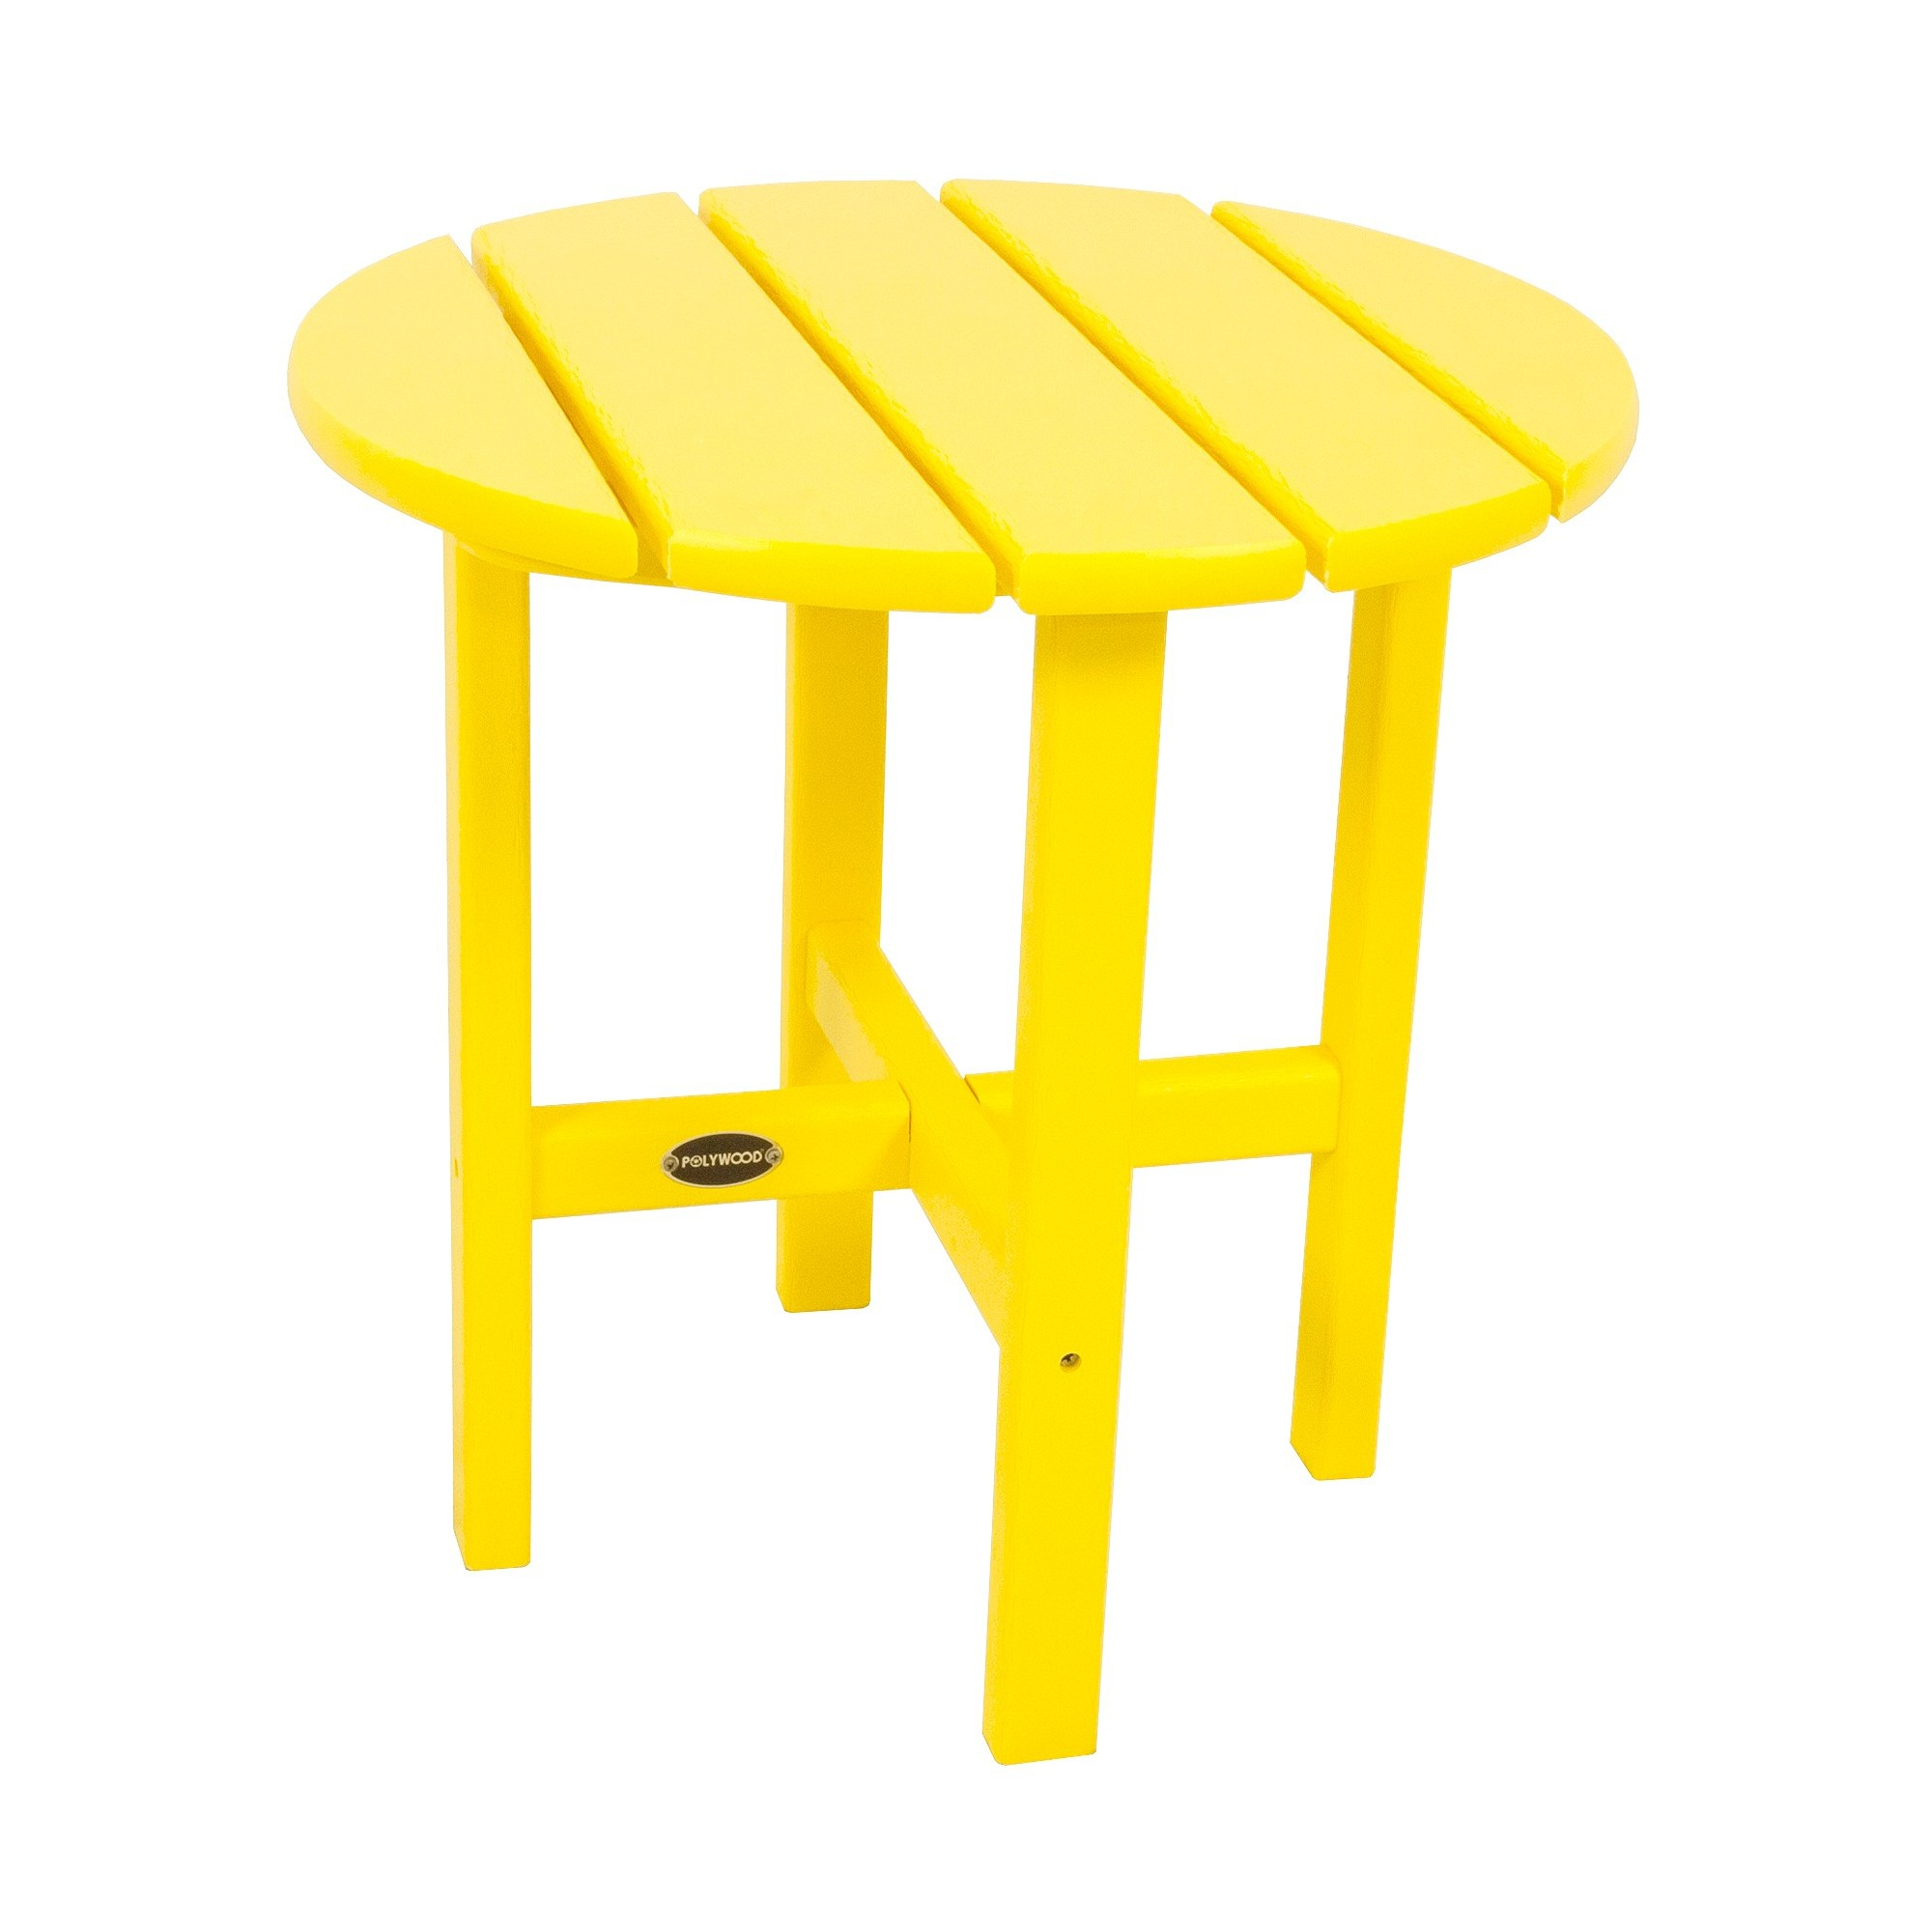 metal tablecloth white garden clearance outdoor cover brick furniture home lots small target side yellow big tables umbrella accent ideas chairs table full size penneys silver